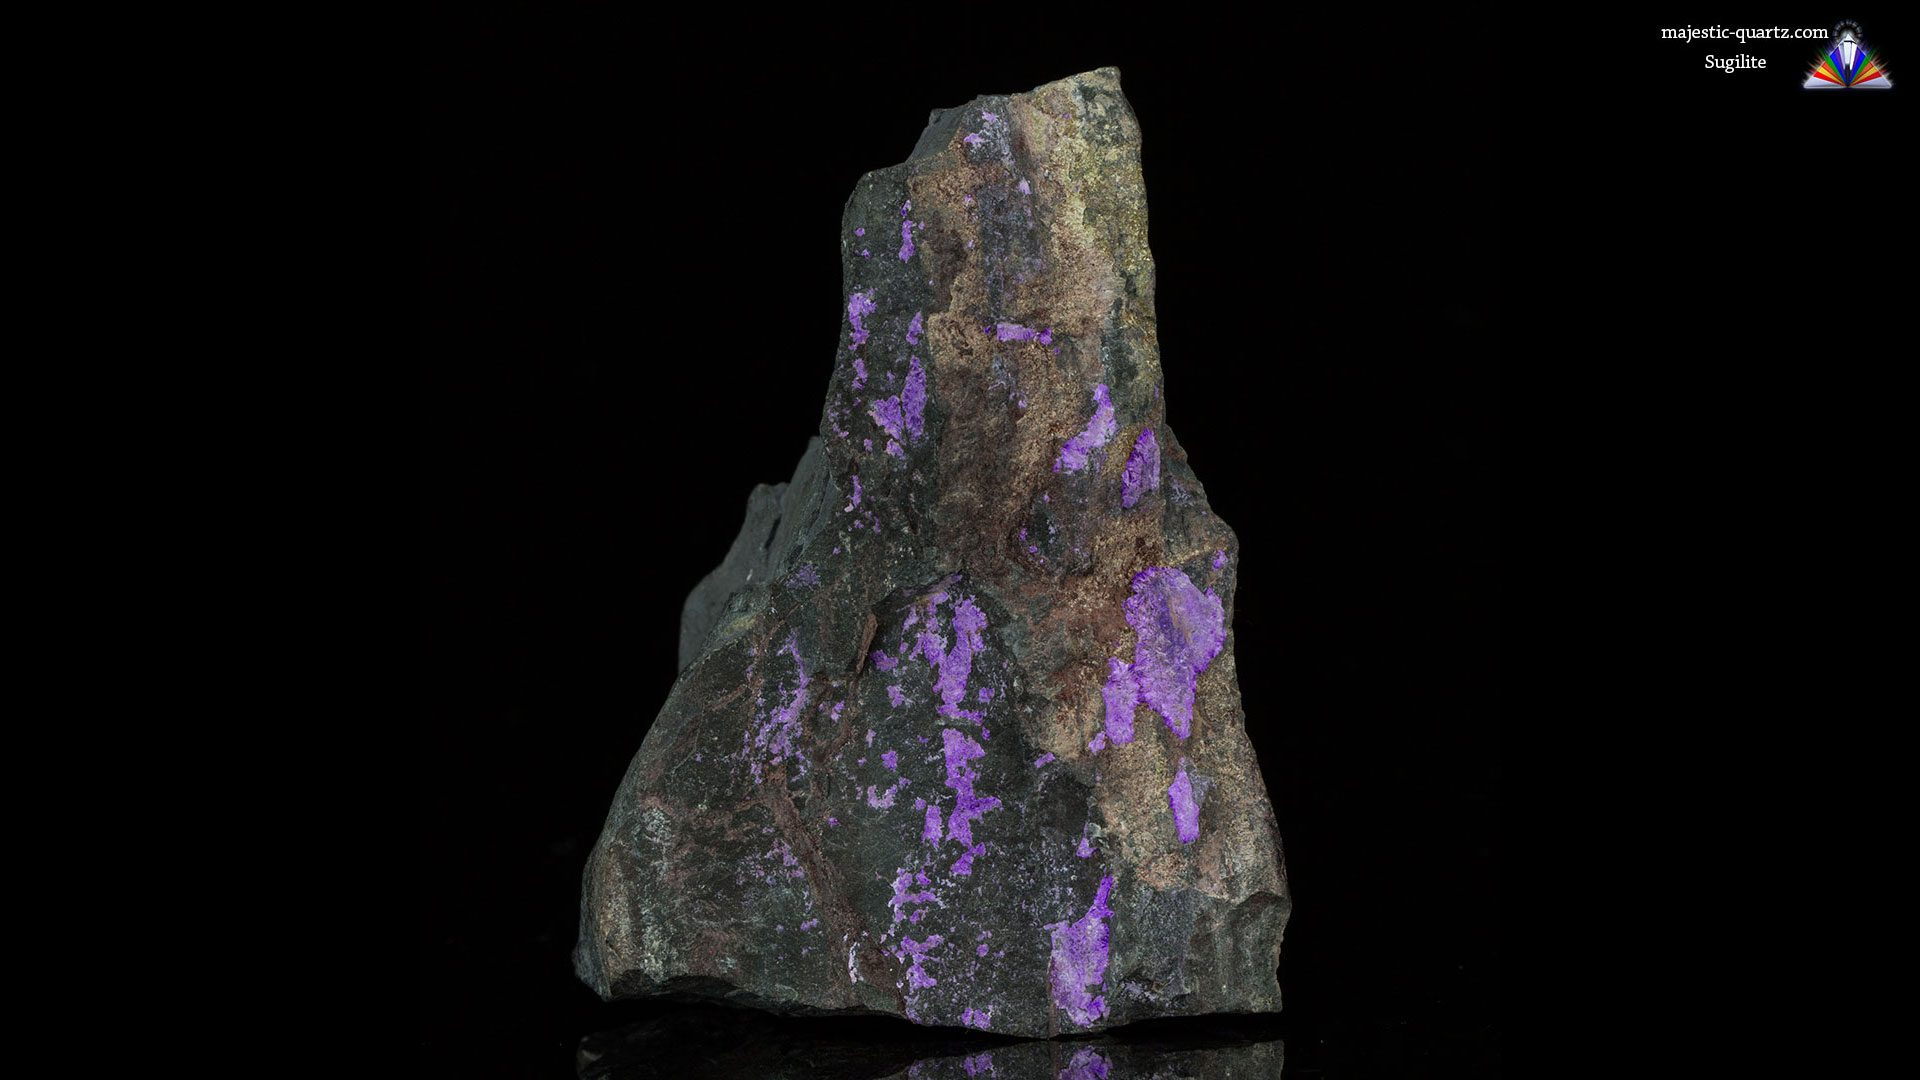 Sugilite properties and meaning photos crystal information - Sugilite Mineral Specimen Photograph By Anthony Bradford